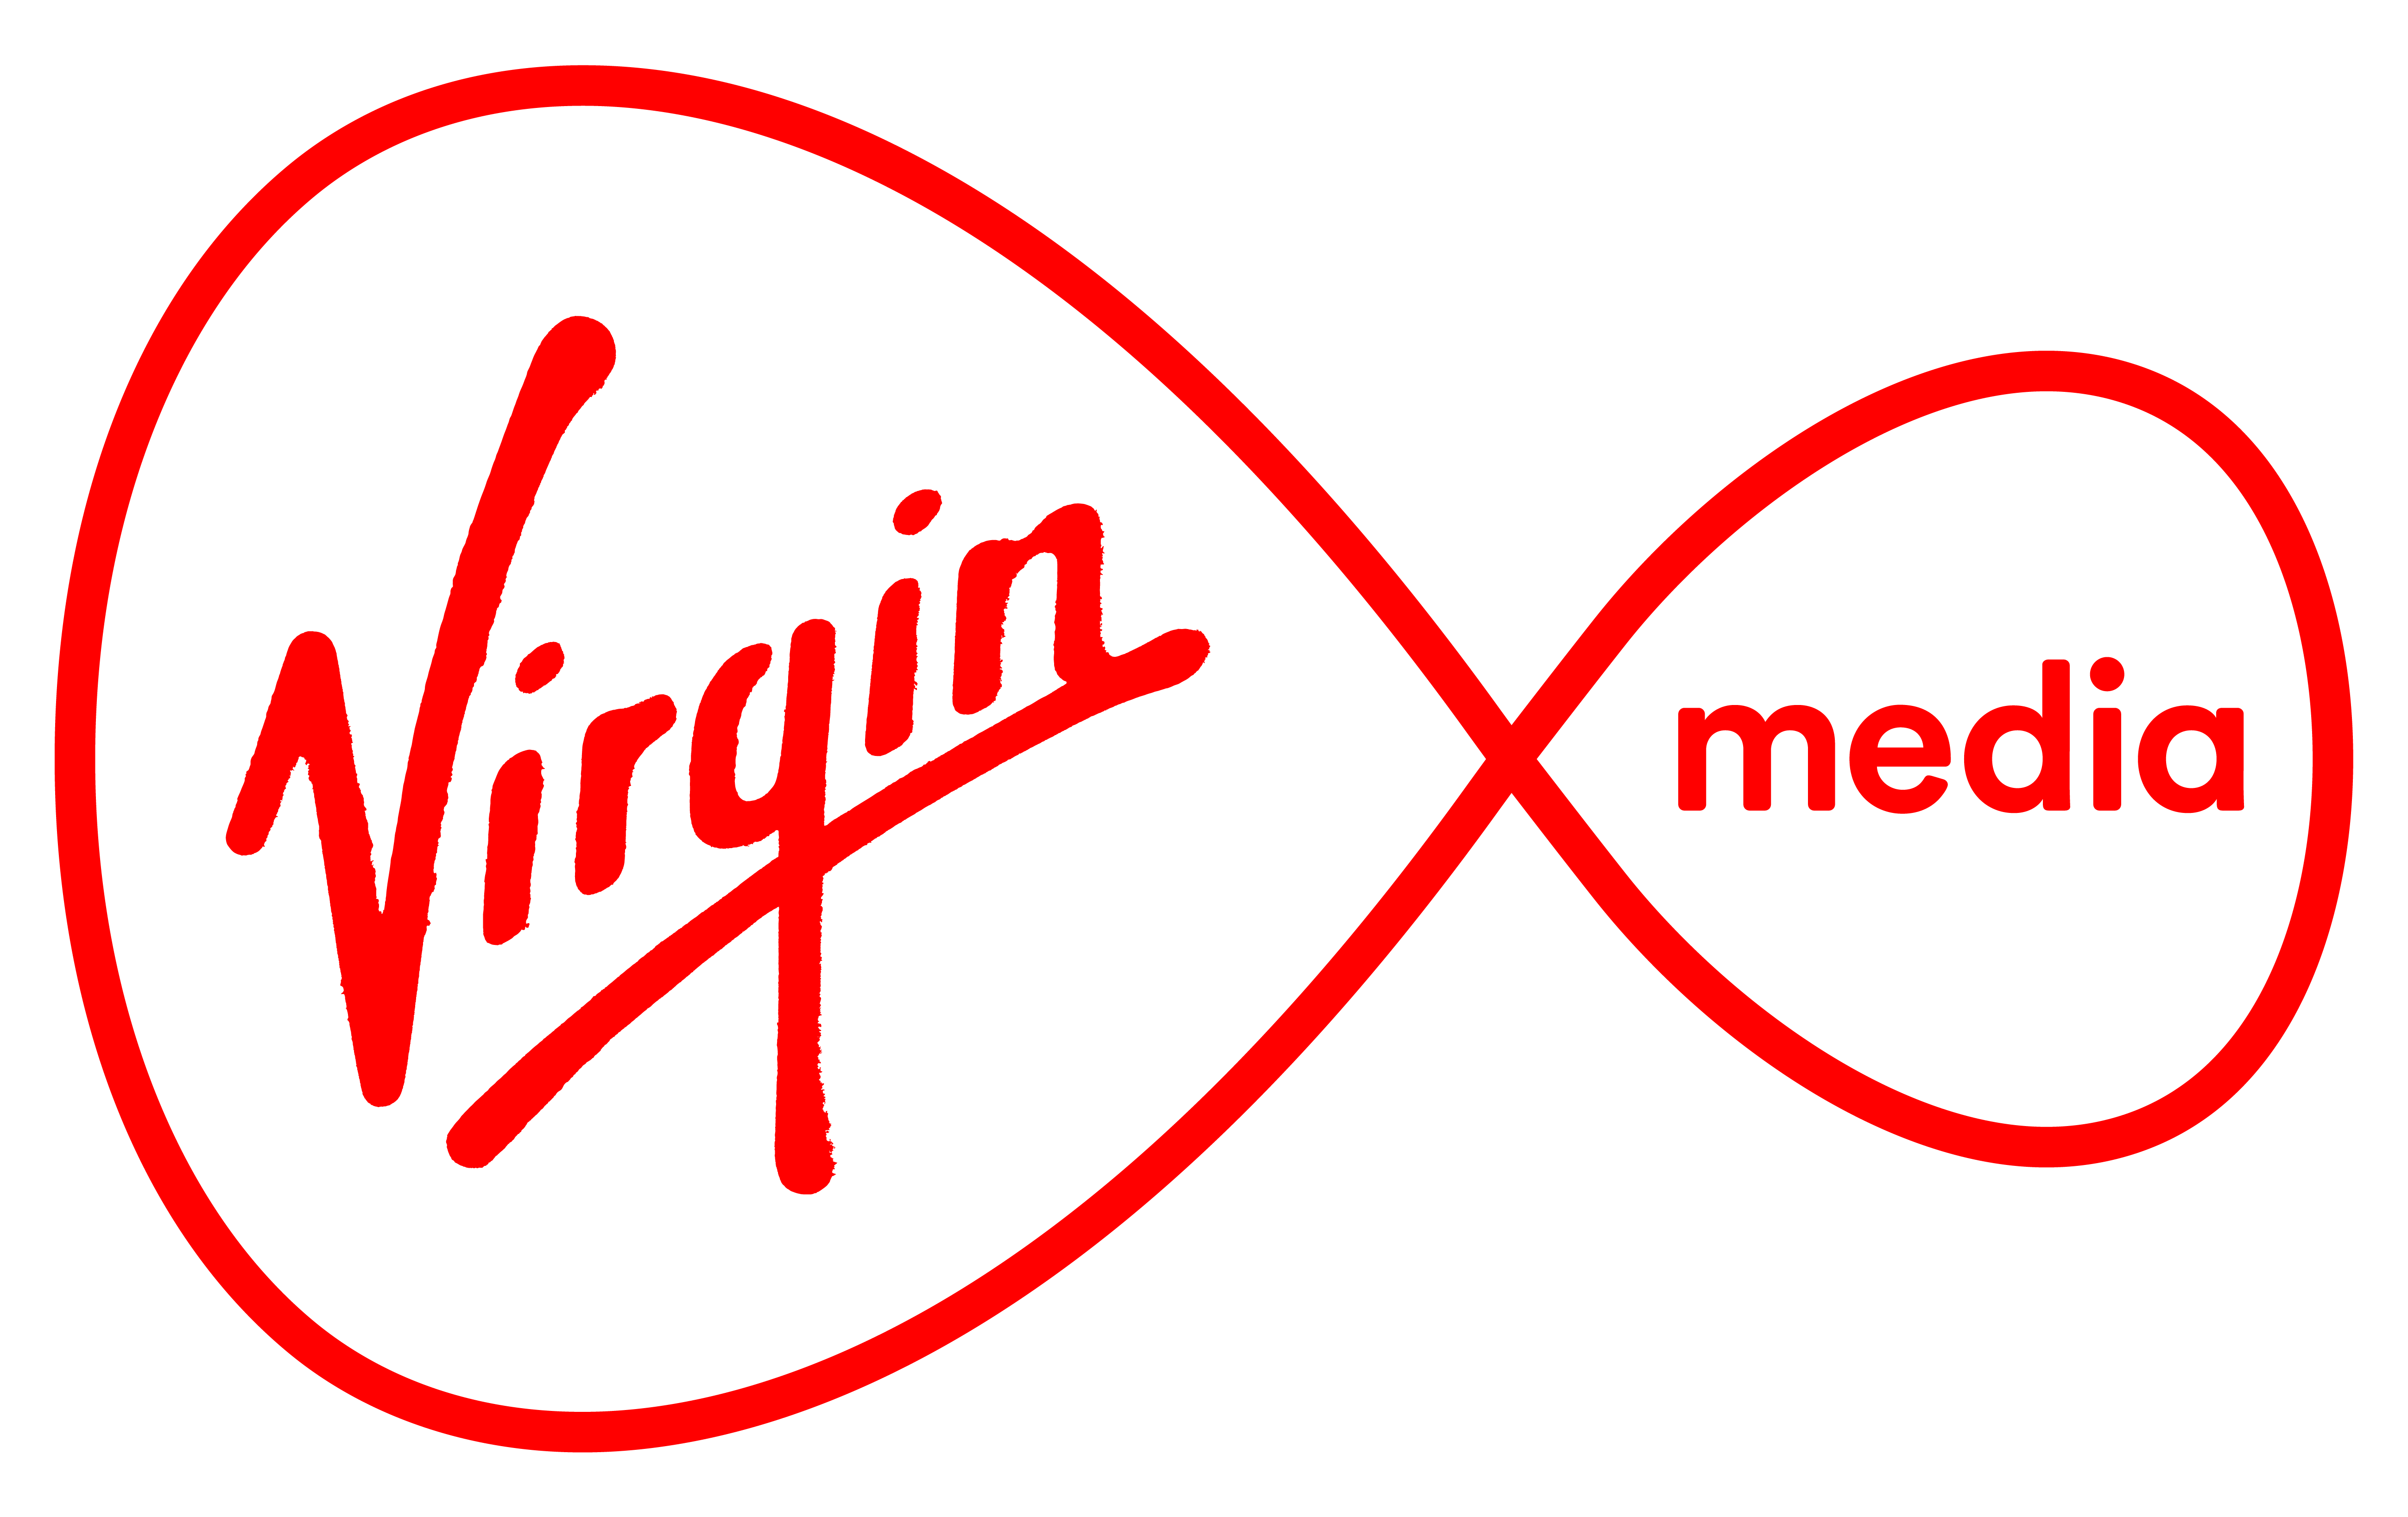 Virgin Media Logo 2014